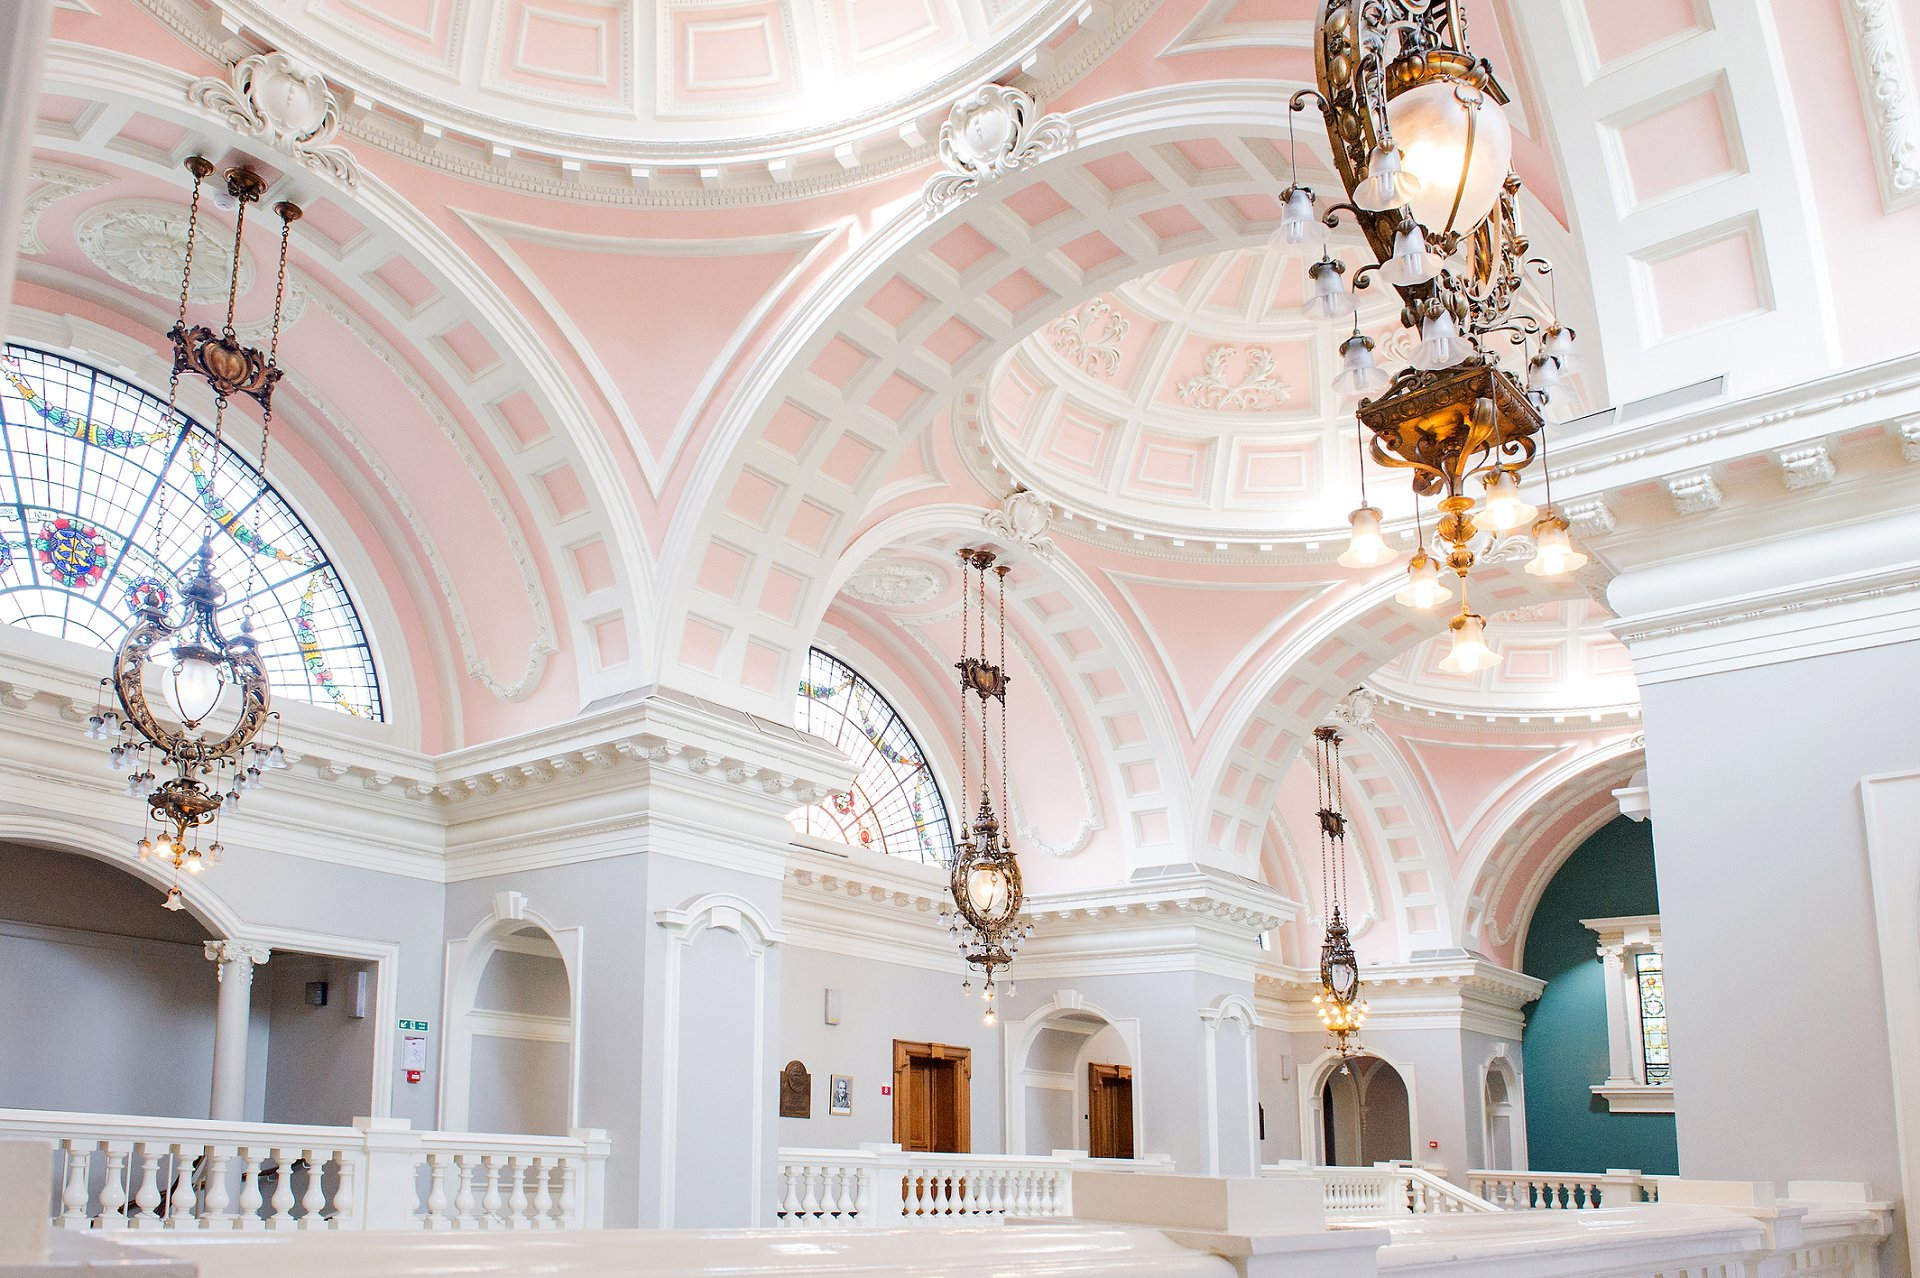 Interior photo of the domed ceilings inside Victoria Hall at Woolwich Town Hall by Emma Duggan Photography